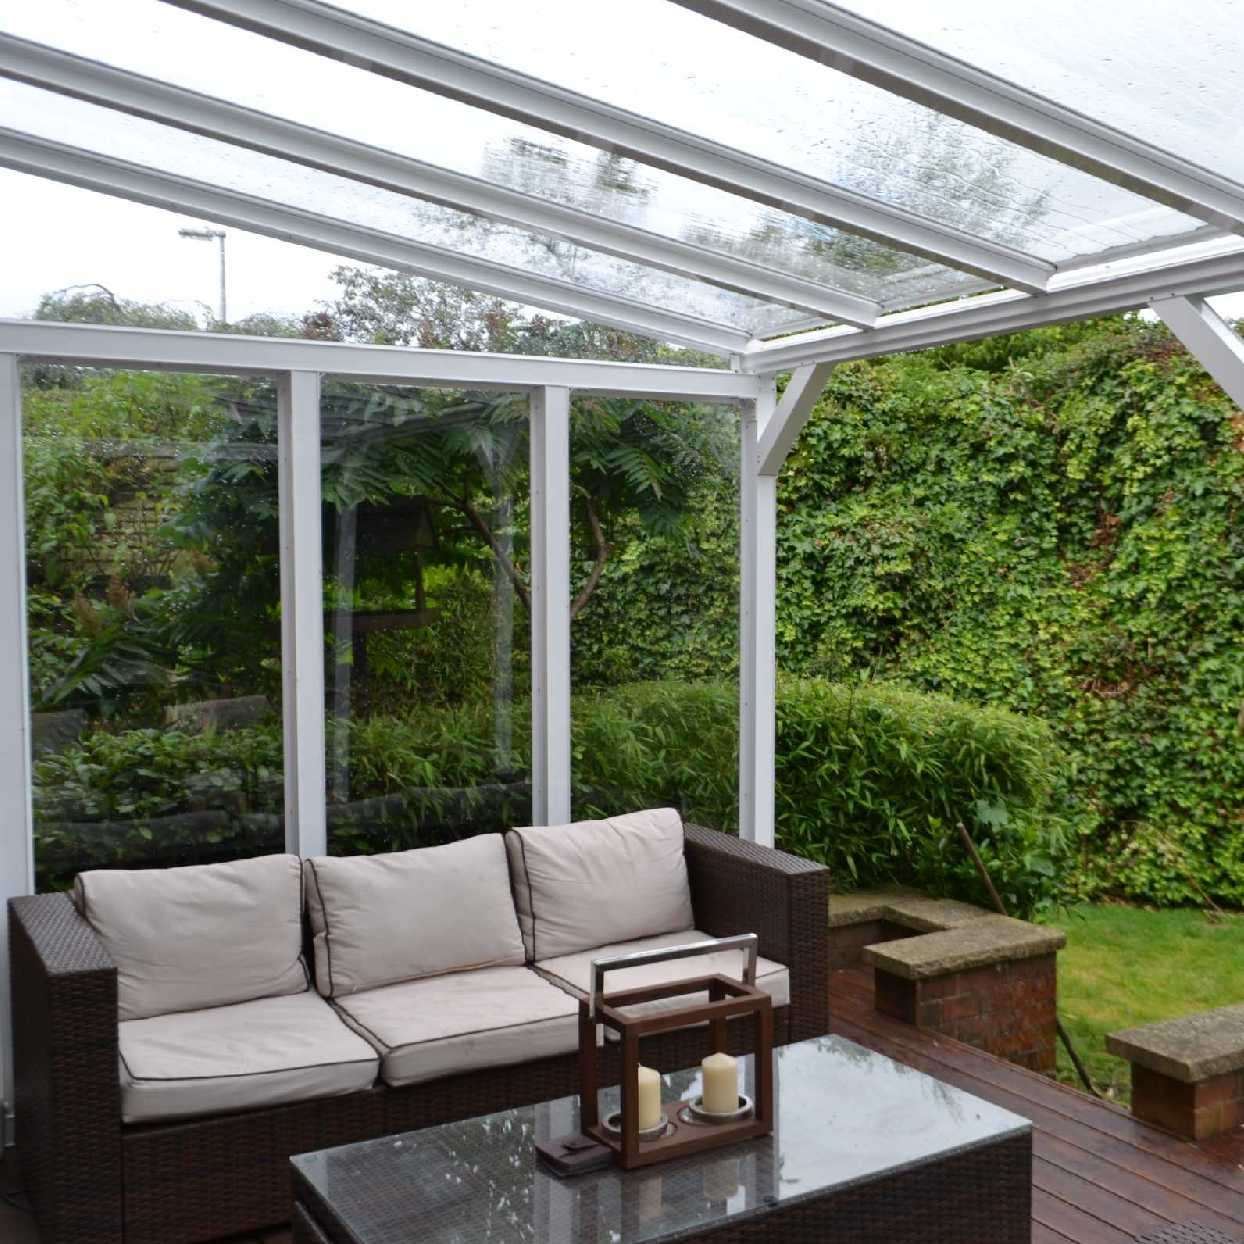 Great selection of Omega Smart Lean-To Canopy with 16mm Polycarbonate Glazing - 8.4m (W) x 3.5m (P), (4) Supporting Posts